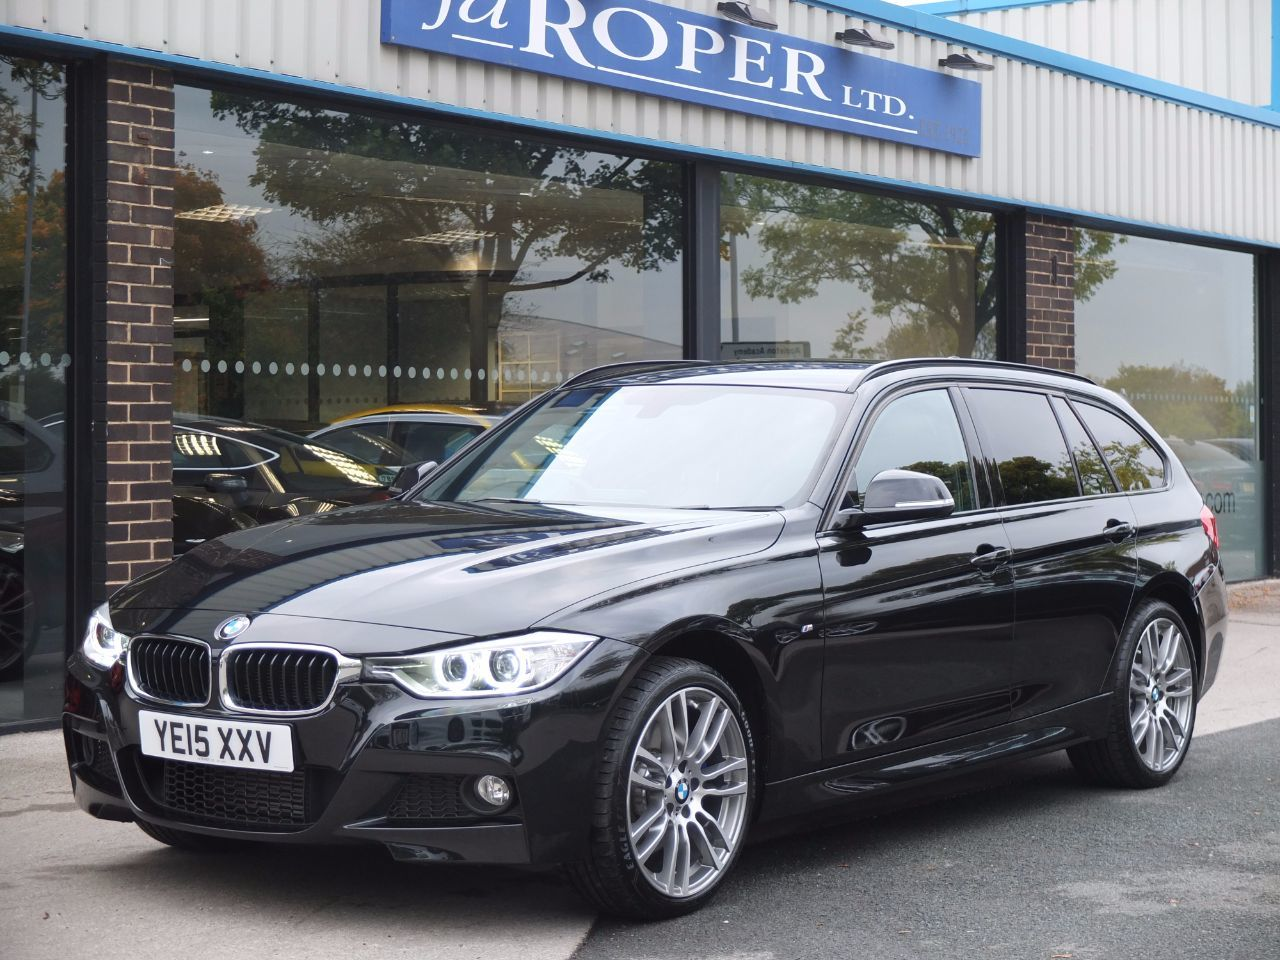 BMW 3 Series 2.0 320d xDrive M Sport Touring Auto (M Sport Plus and Media Packs) Estate Diesel Black Sapphire MetallicBMW 3 Series 2.0 320d xDrive M Sport Touring Auto (M Sport Plus and Media Packs) Estate Diesel Black Sapphire Metallic at fa Roper Ltd Bradford